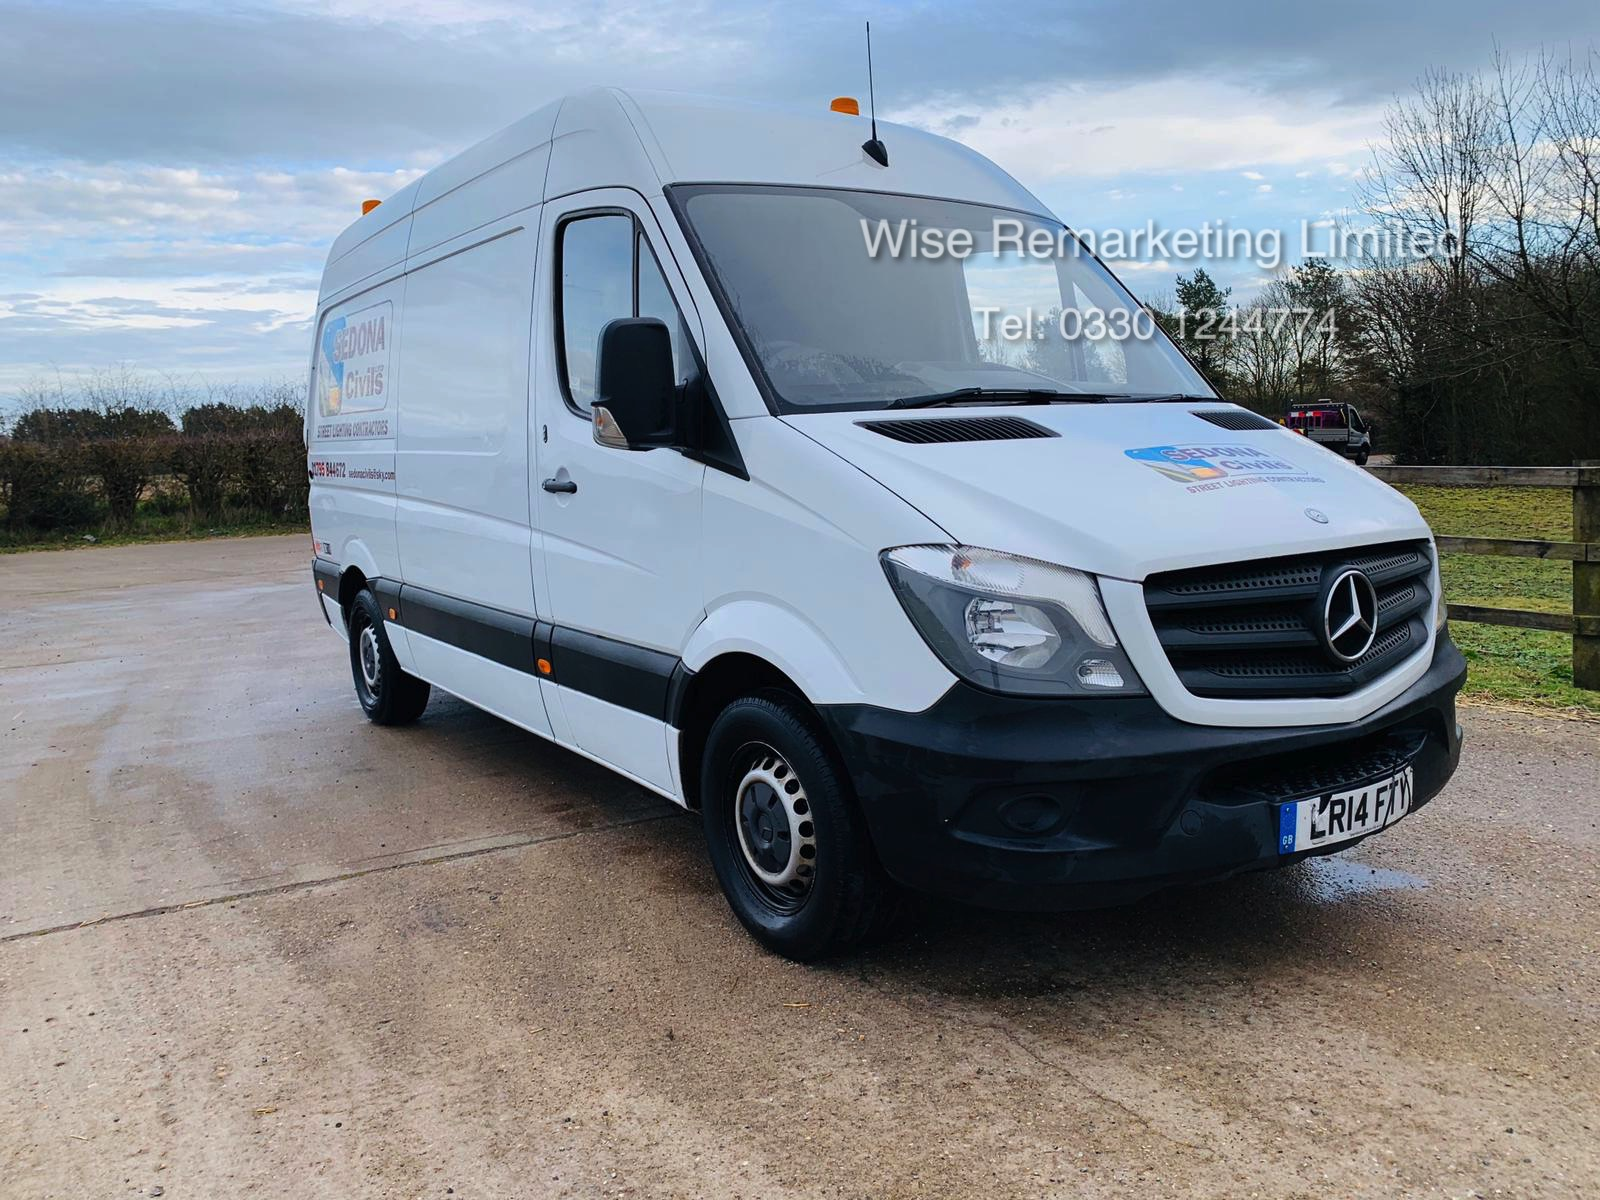 Mercedes Sprinter 313 2.1 CDI - 2014 14 Reg - 6 Speed - Ply Lined - Company Owned